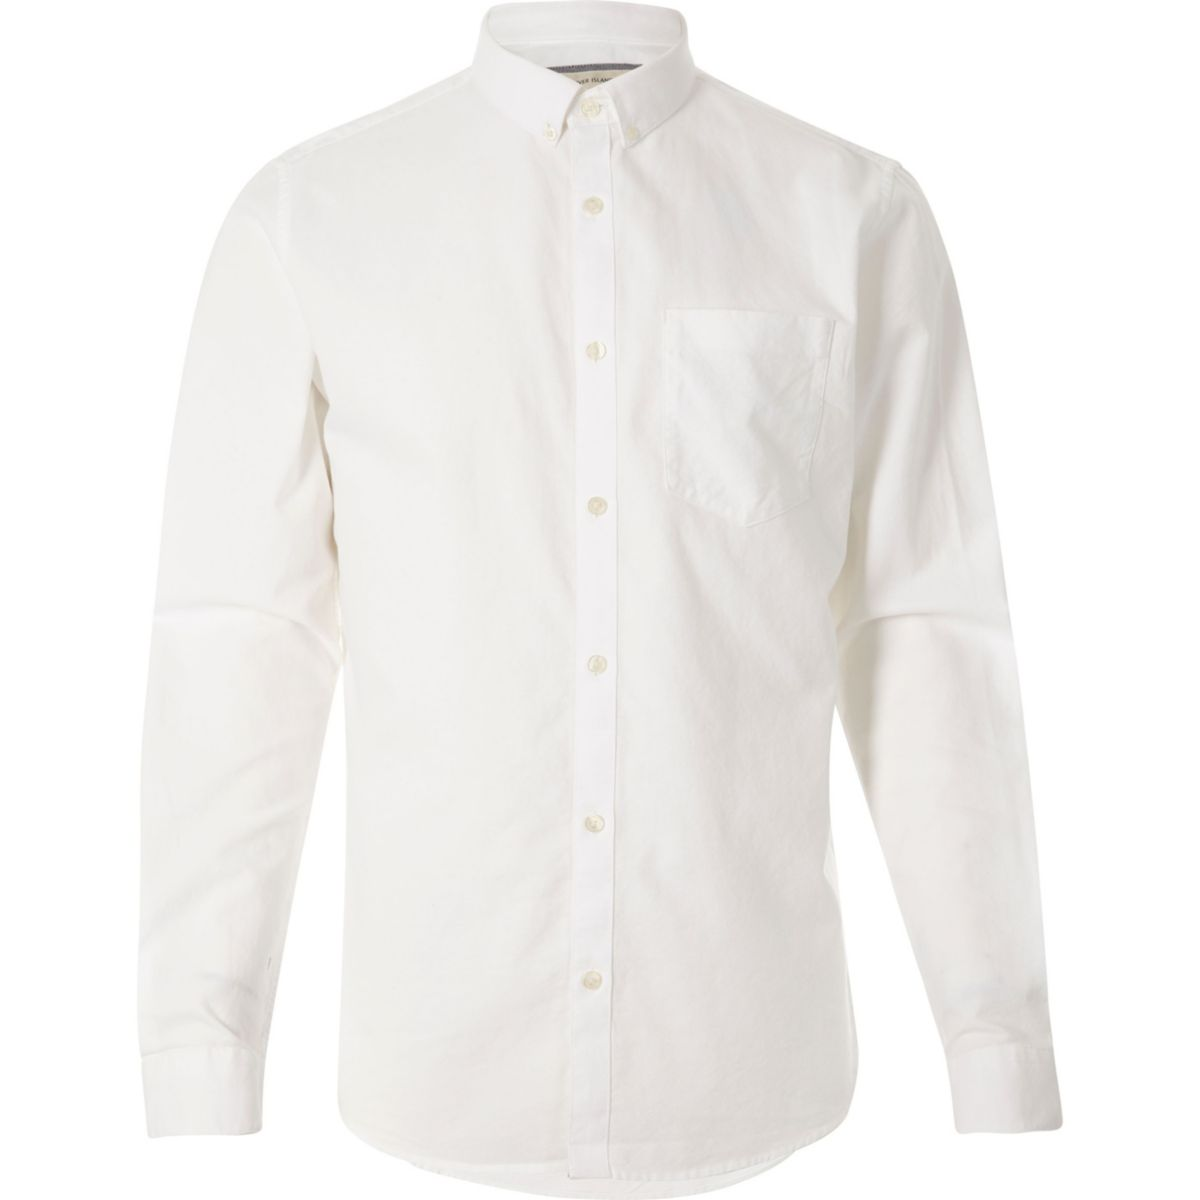 White long sleeve button down oxford shirt shirts sale for Oxford long sleeve button down shirt